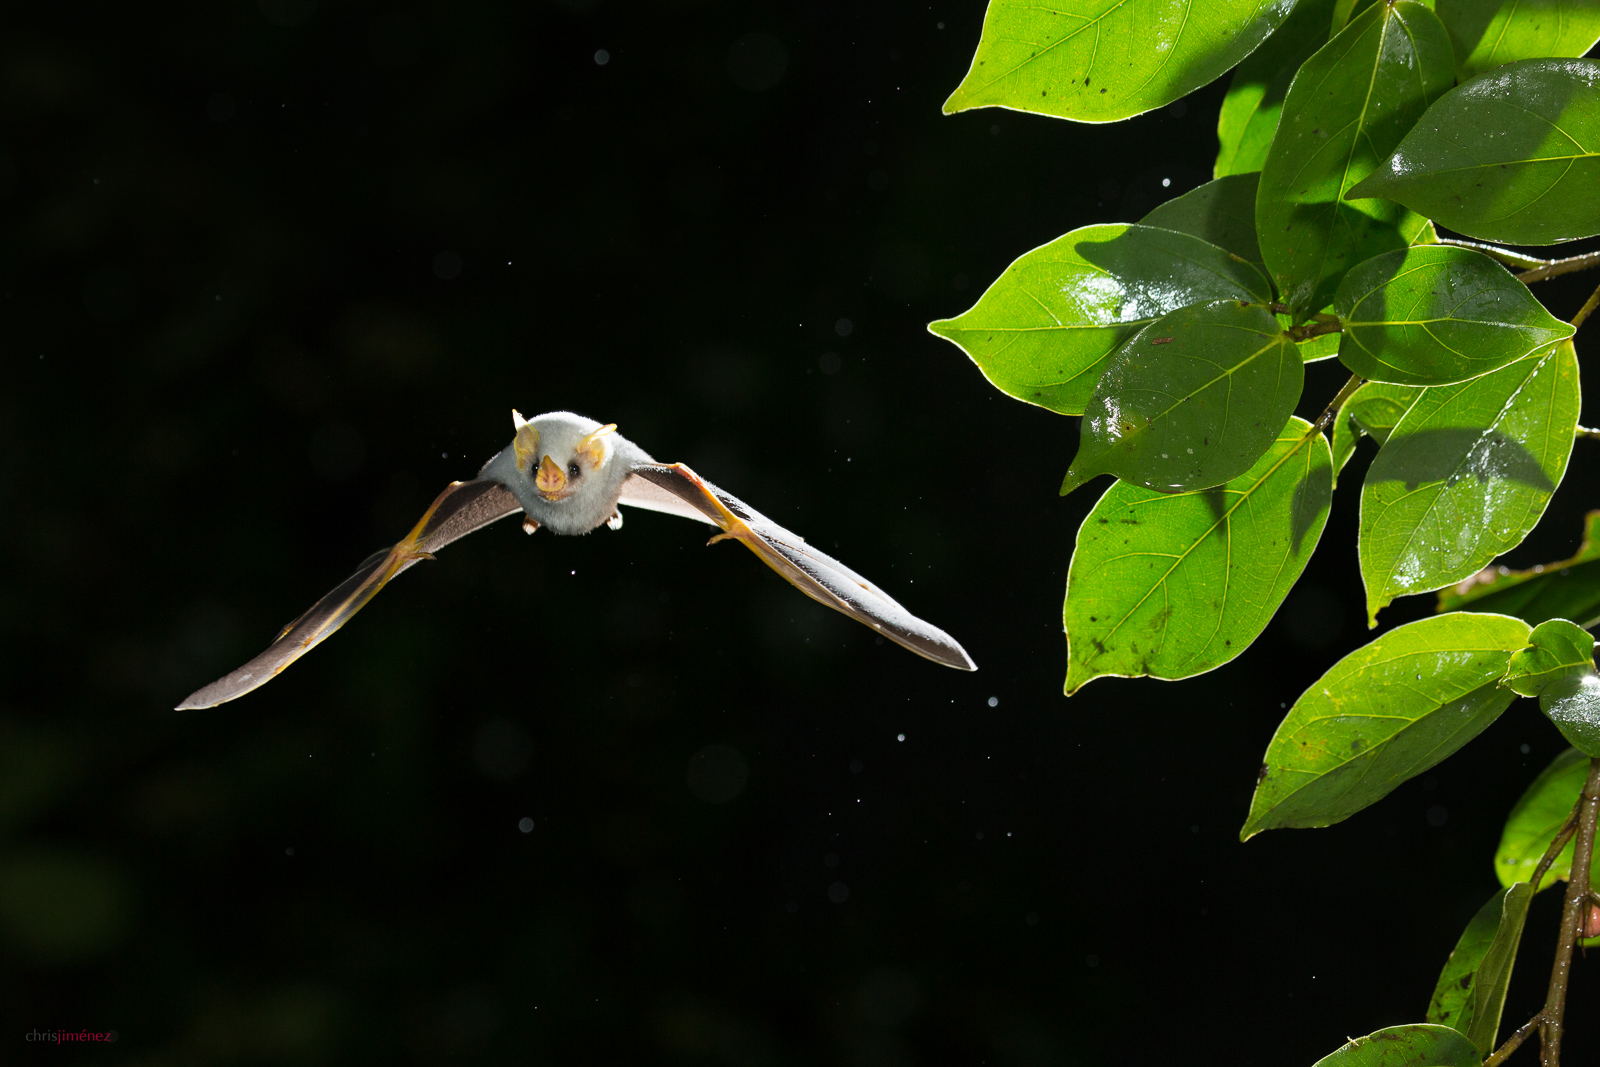 Honduran white bat tent (Ectophylla alba) in flight at the low lands of Costa Rica